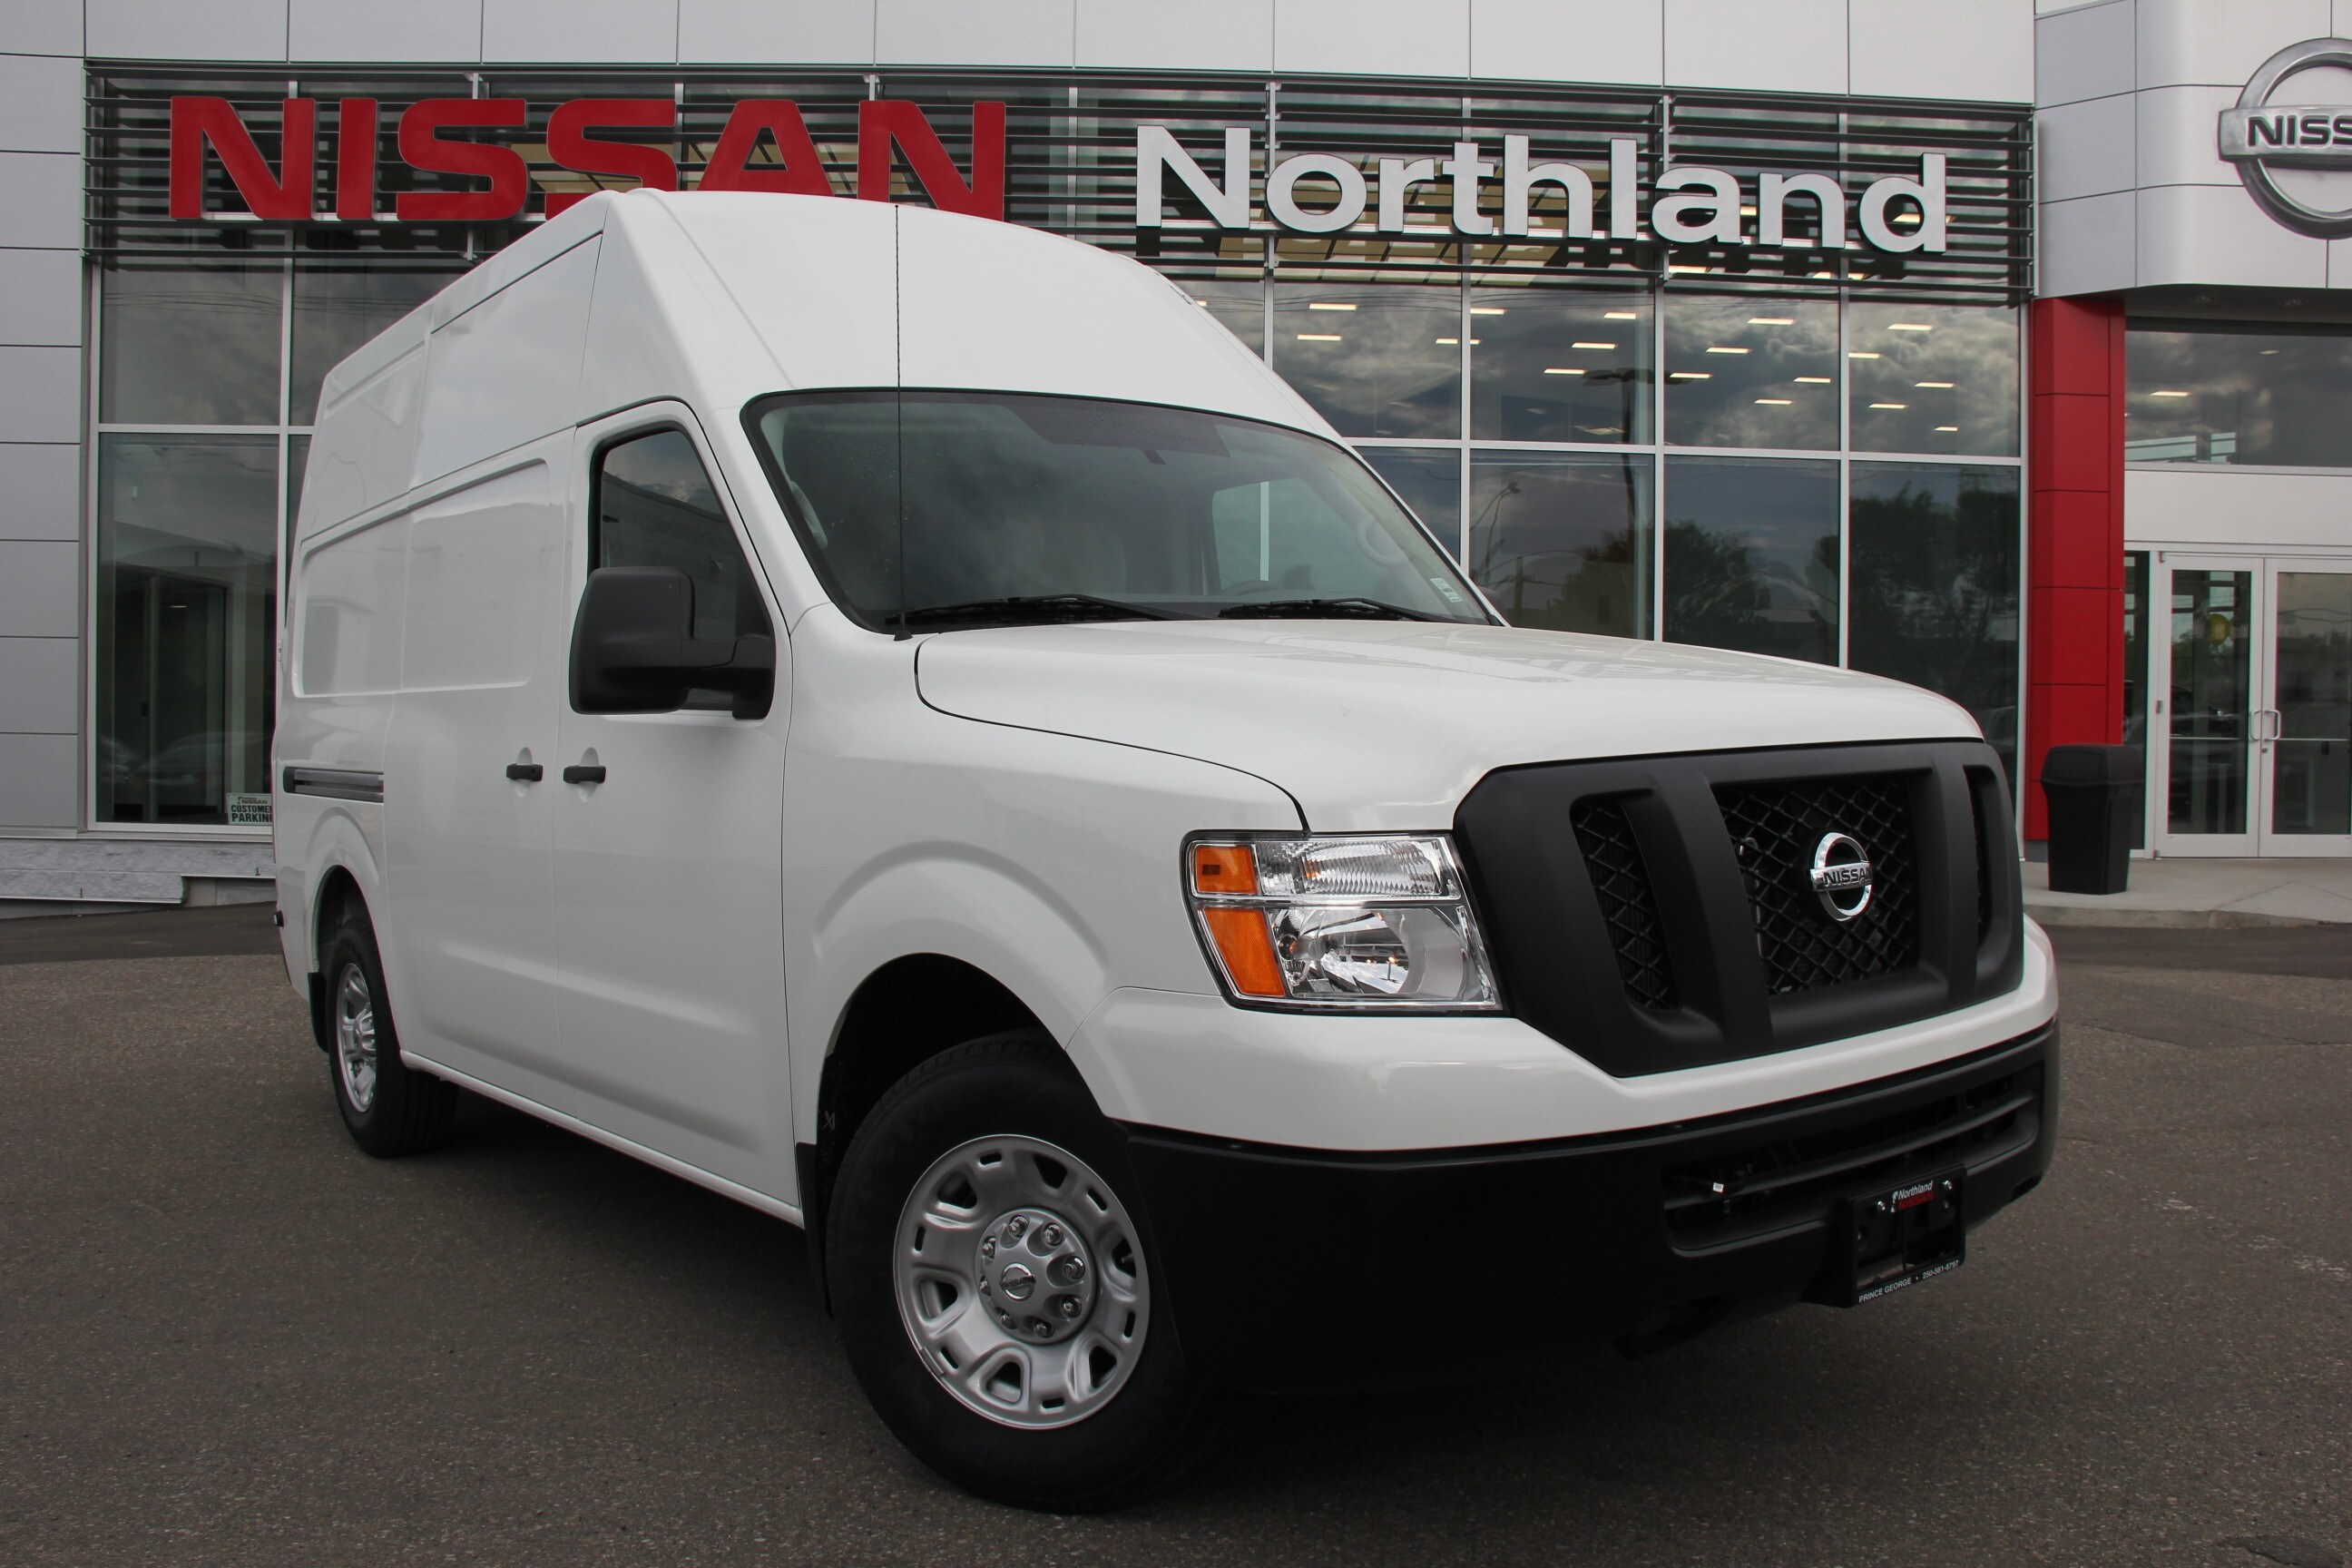 2017 Nissan Nv Cargo S comes with Winter Tires Full-size Cargo Van